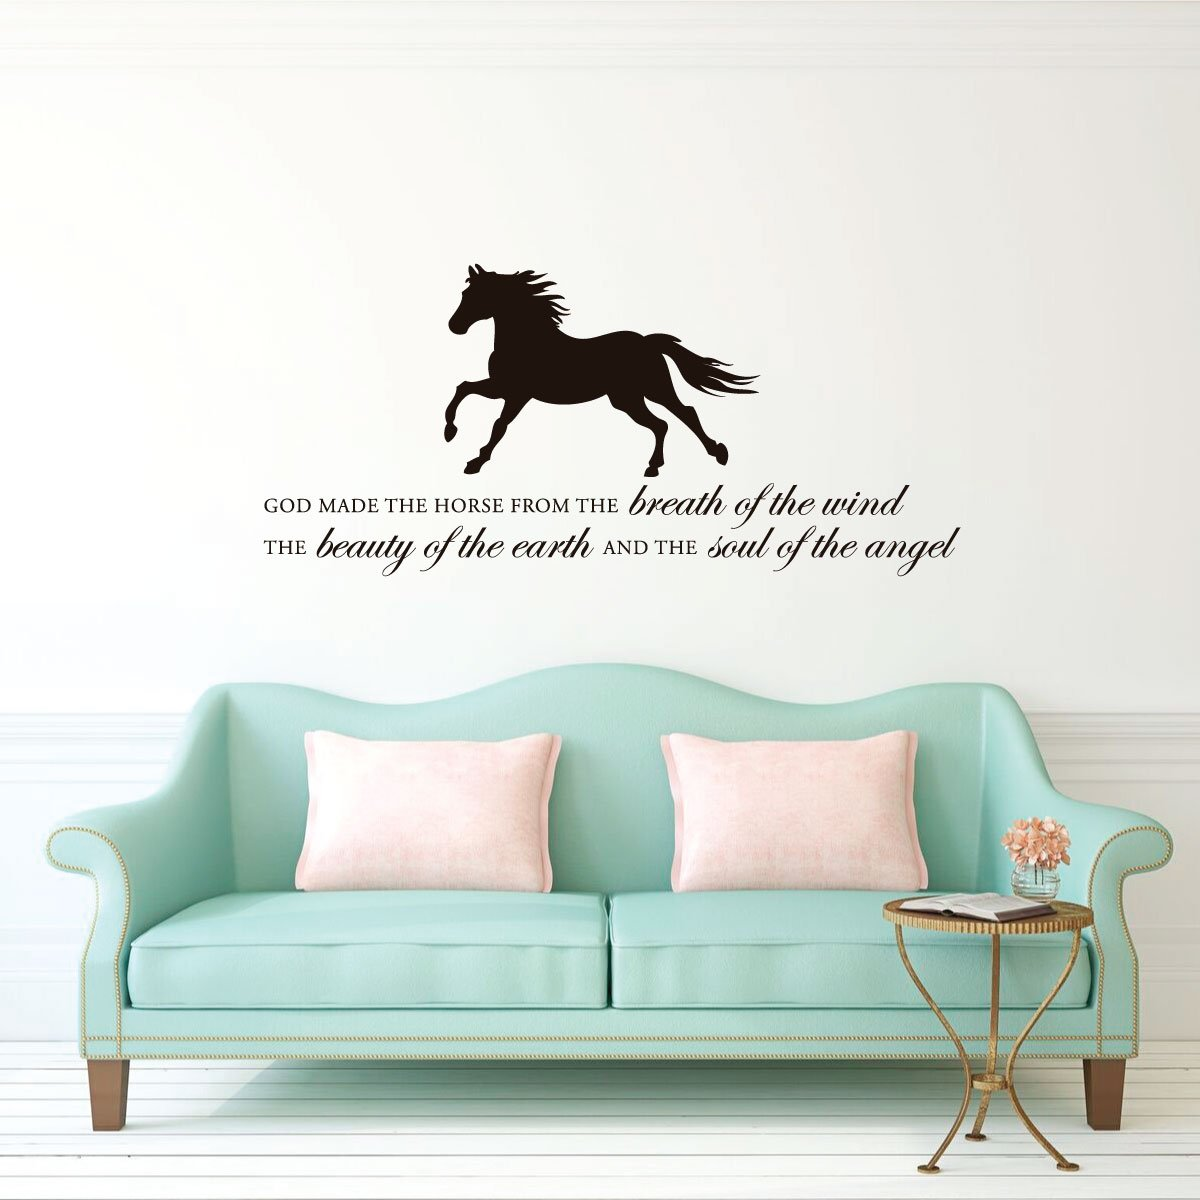 """Horse Vinyl Wall Decal """"God Made the Horse"""" With Silhouette Image Home Decor for Living Room, Tack Room, or Barn"""